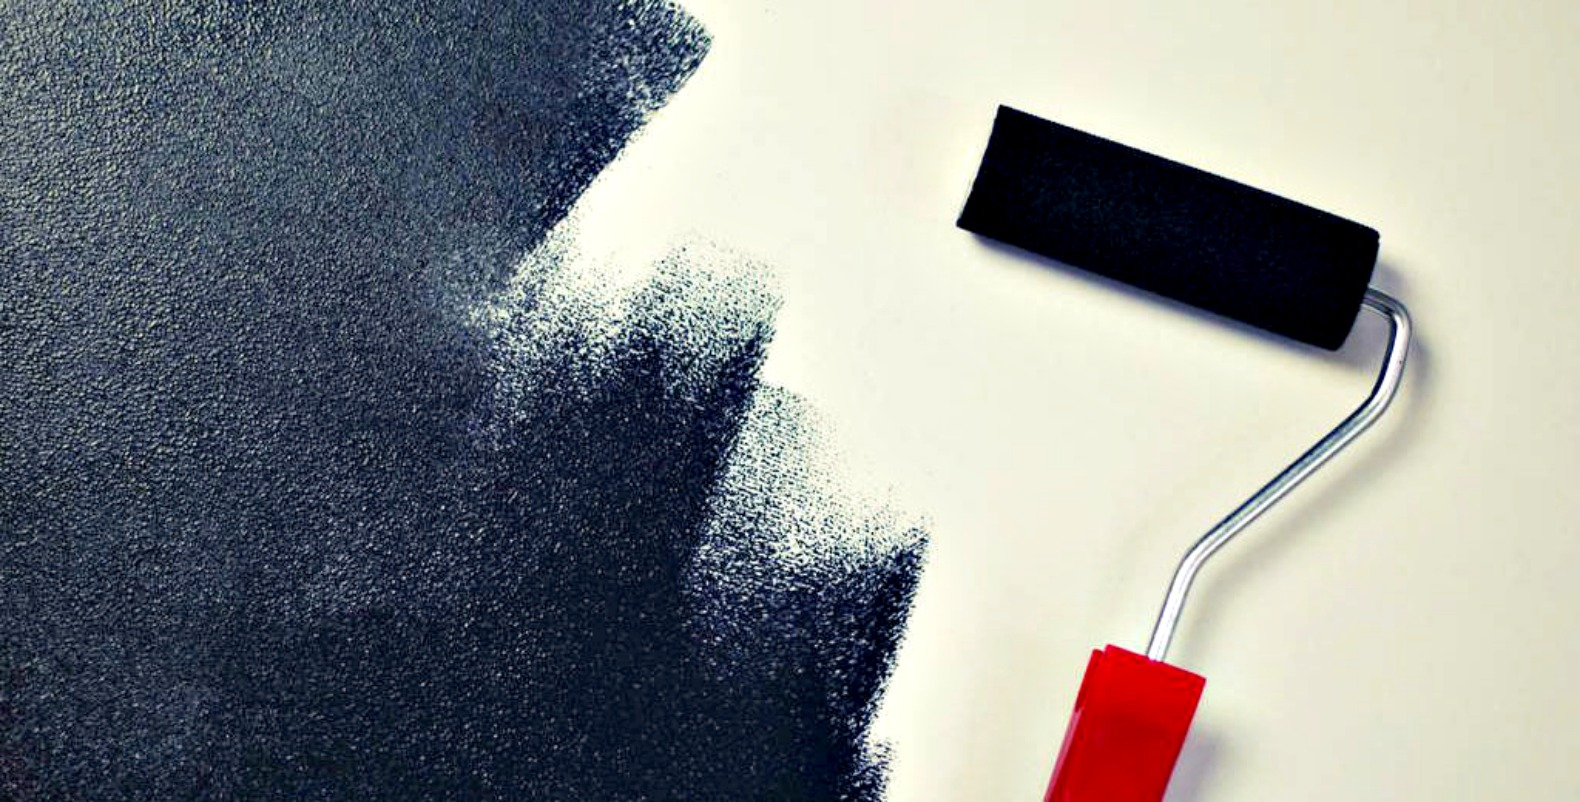 Revolutionary solar paint creates endless energy from water vapor